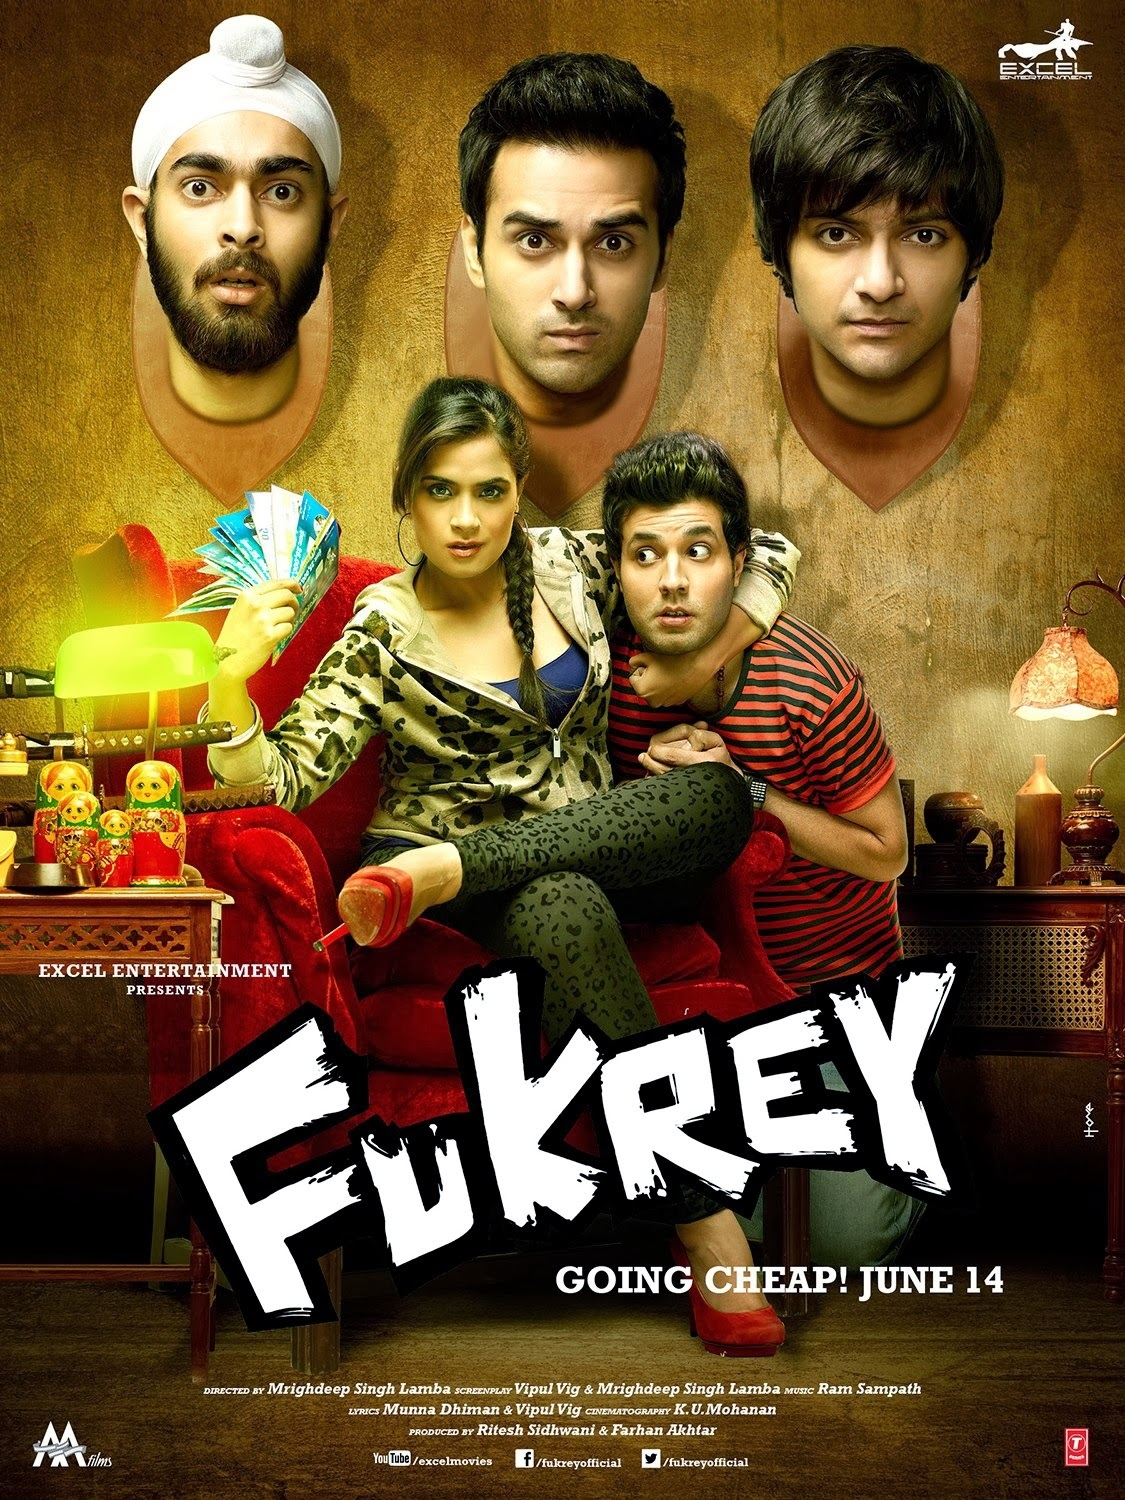 Fukrey 2013 Hindi 1080p Bluray x264 DTS-HDMA-5.1 – Hon3yHD | 14 GB |